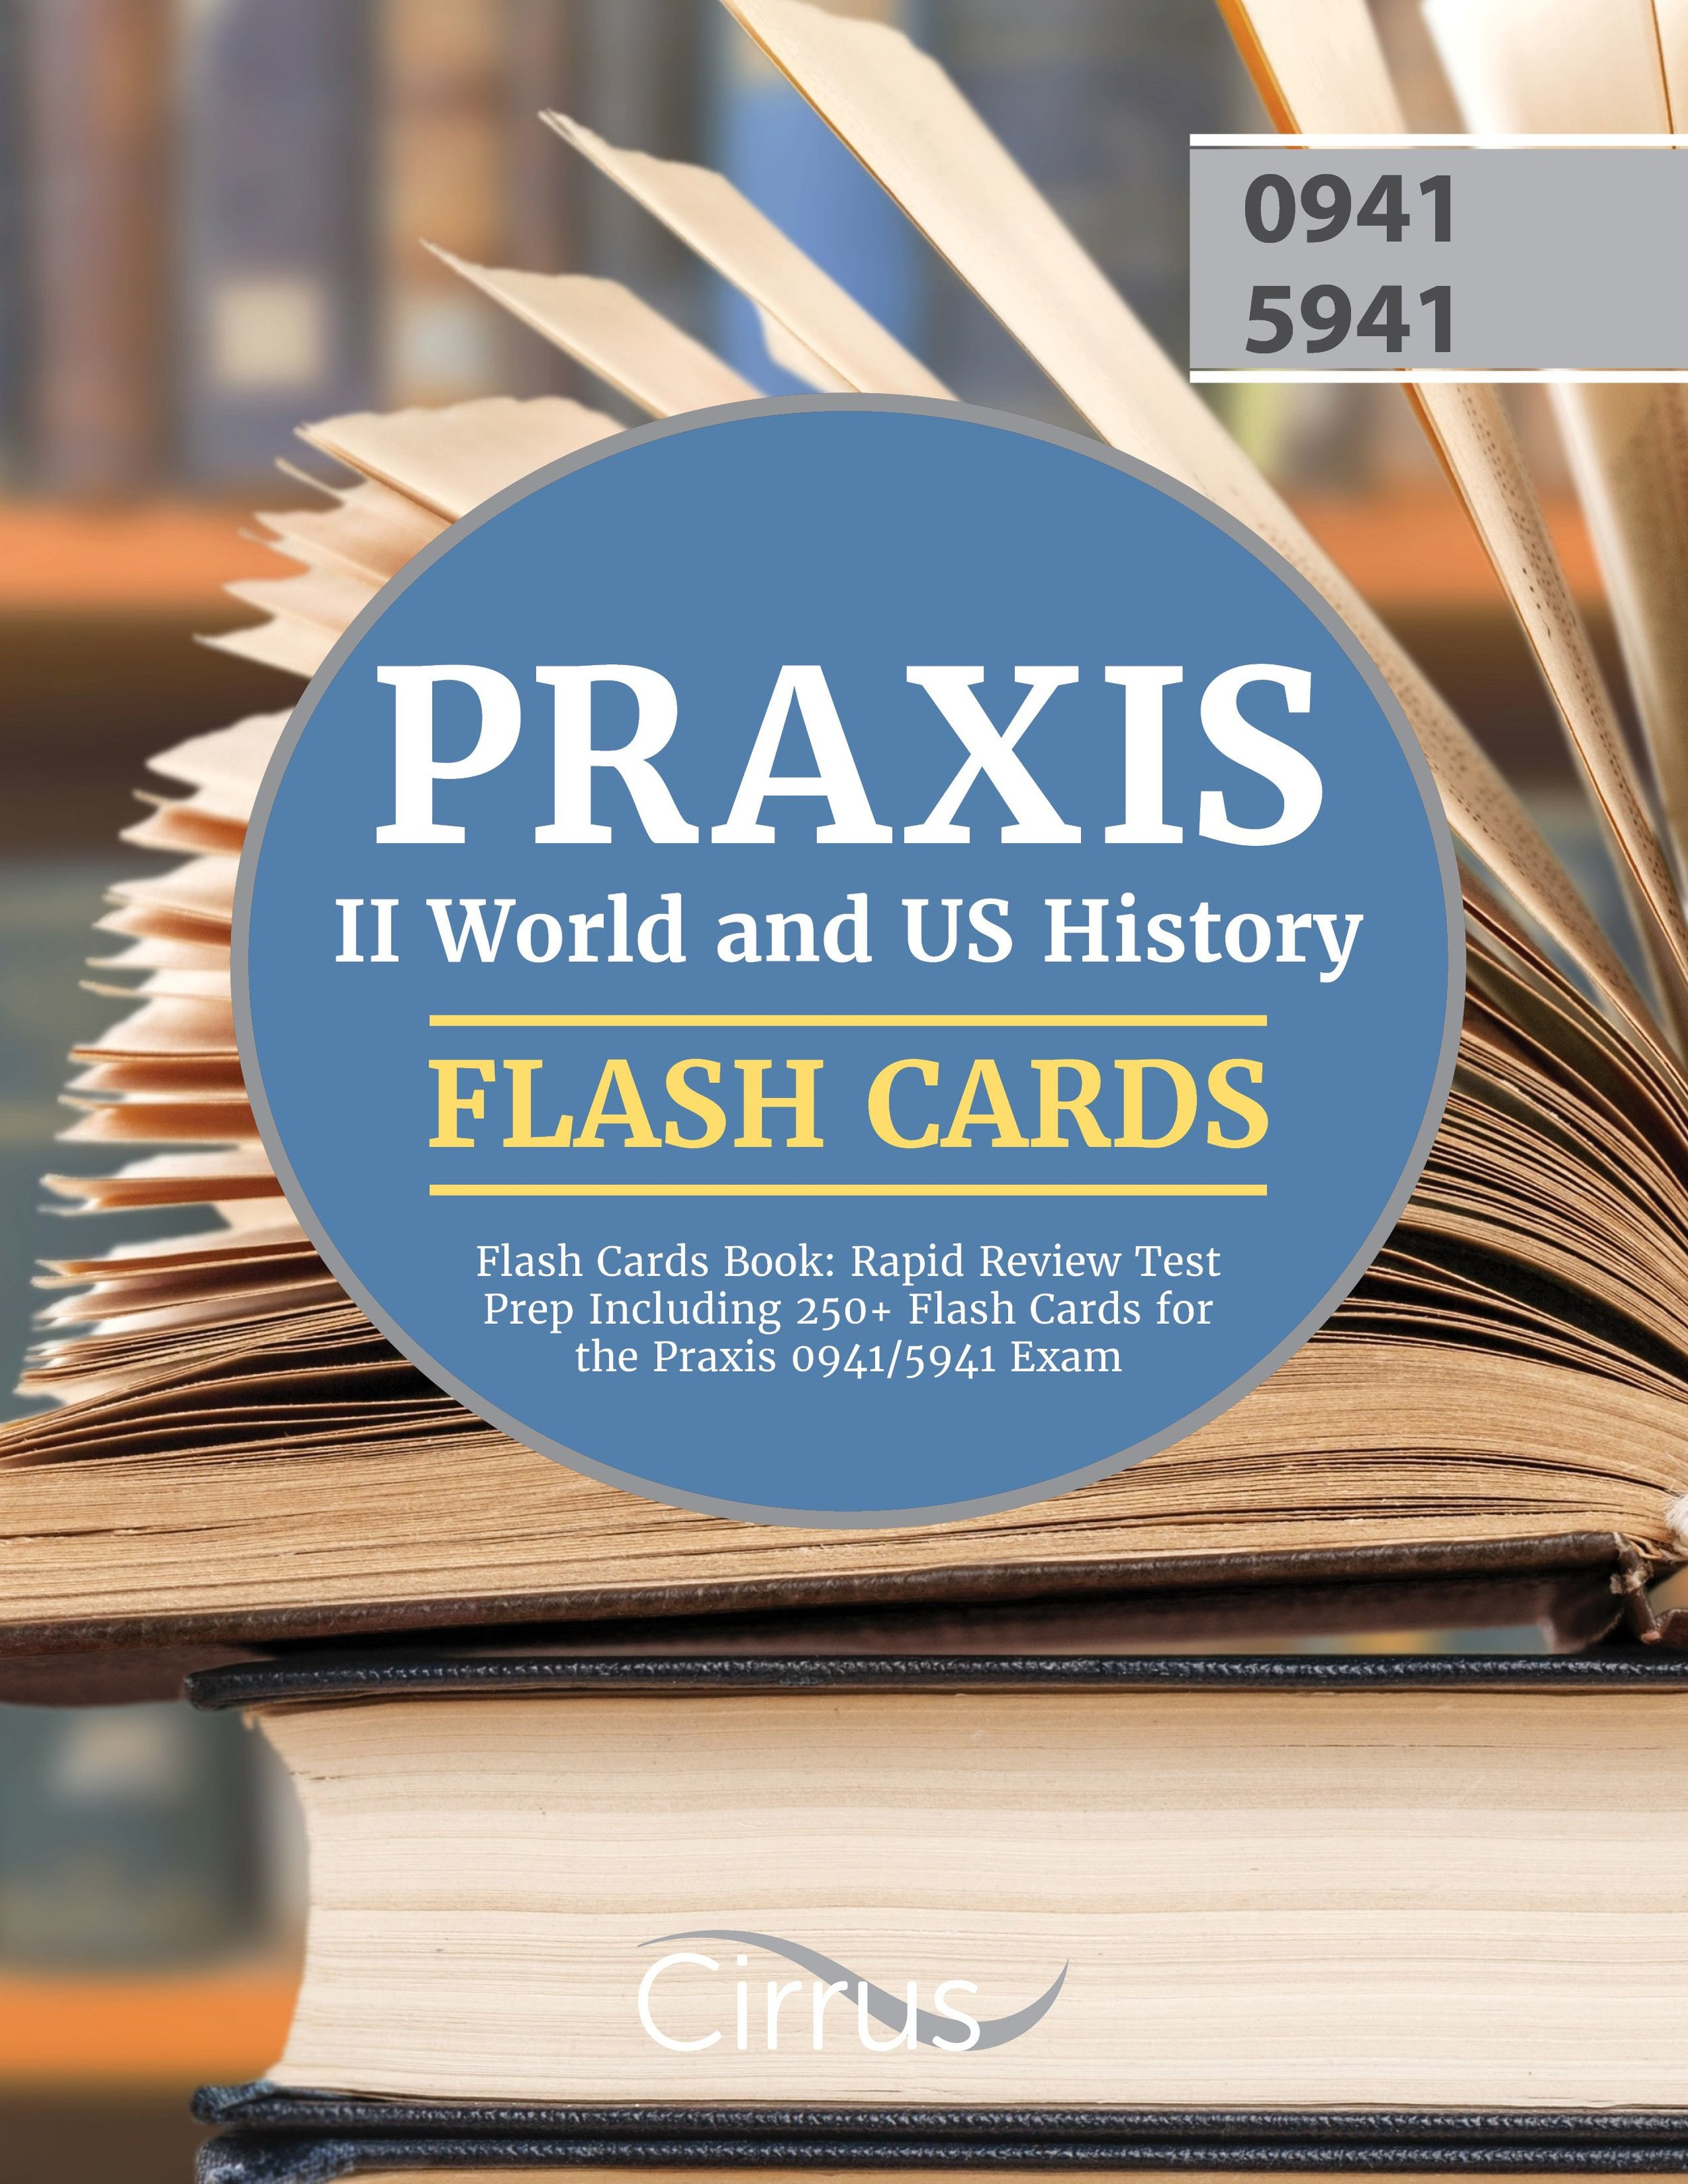 Praxis II World and US History Flash Cards Book